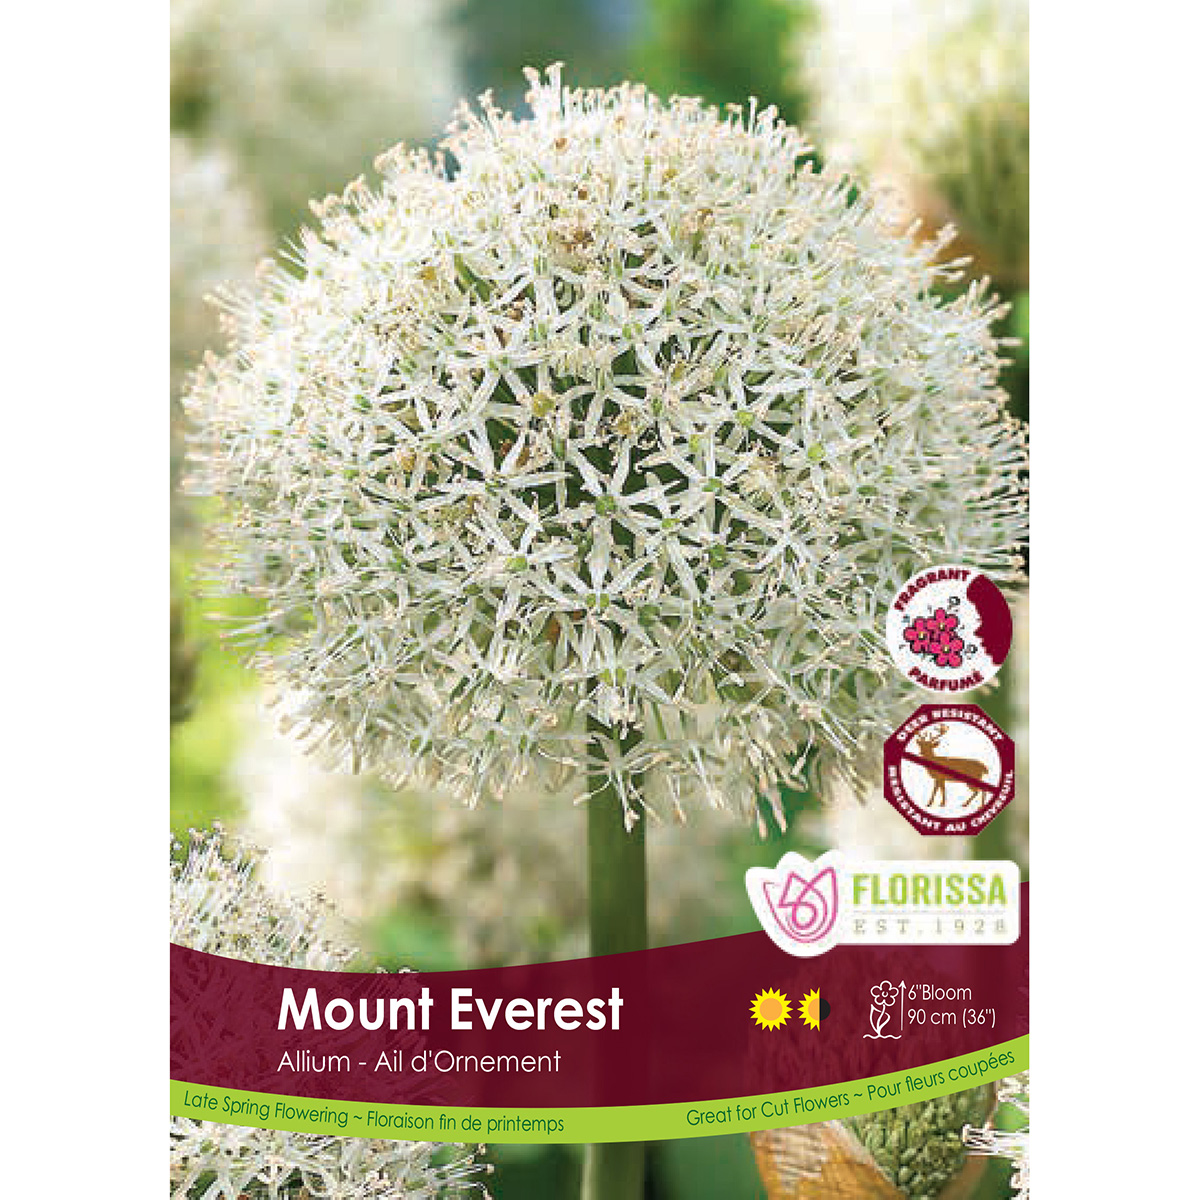 Bulk_Allium_Mount Everest.jpg